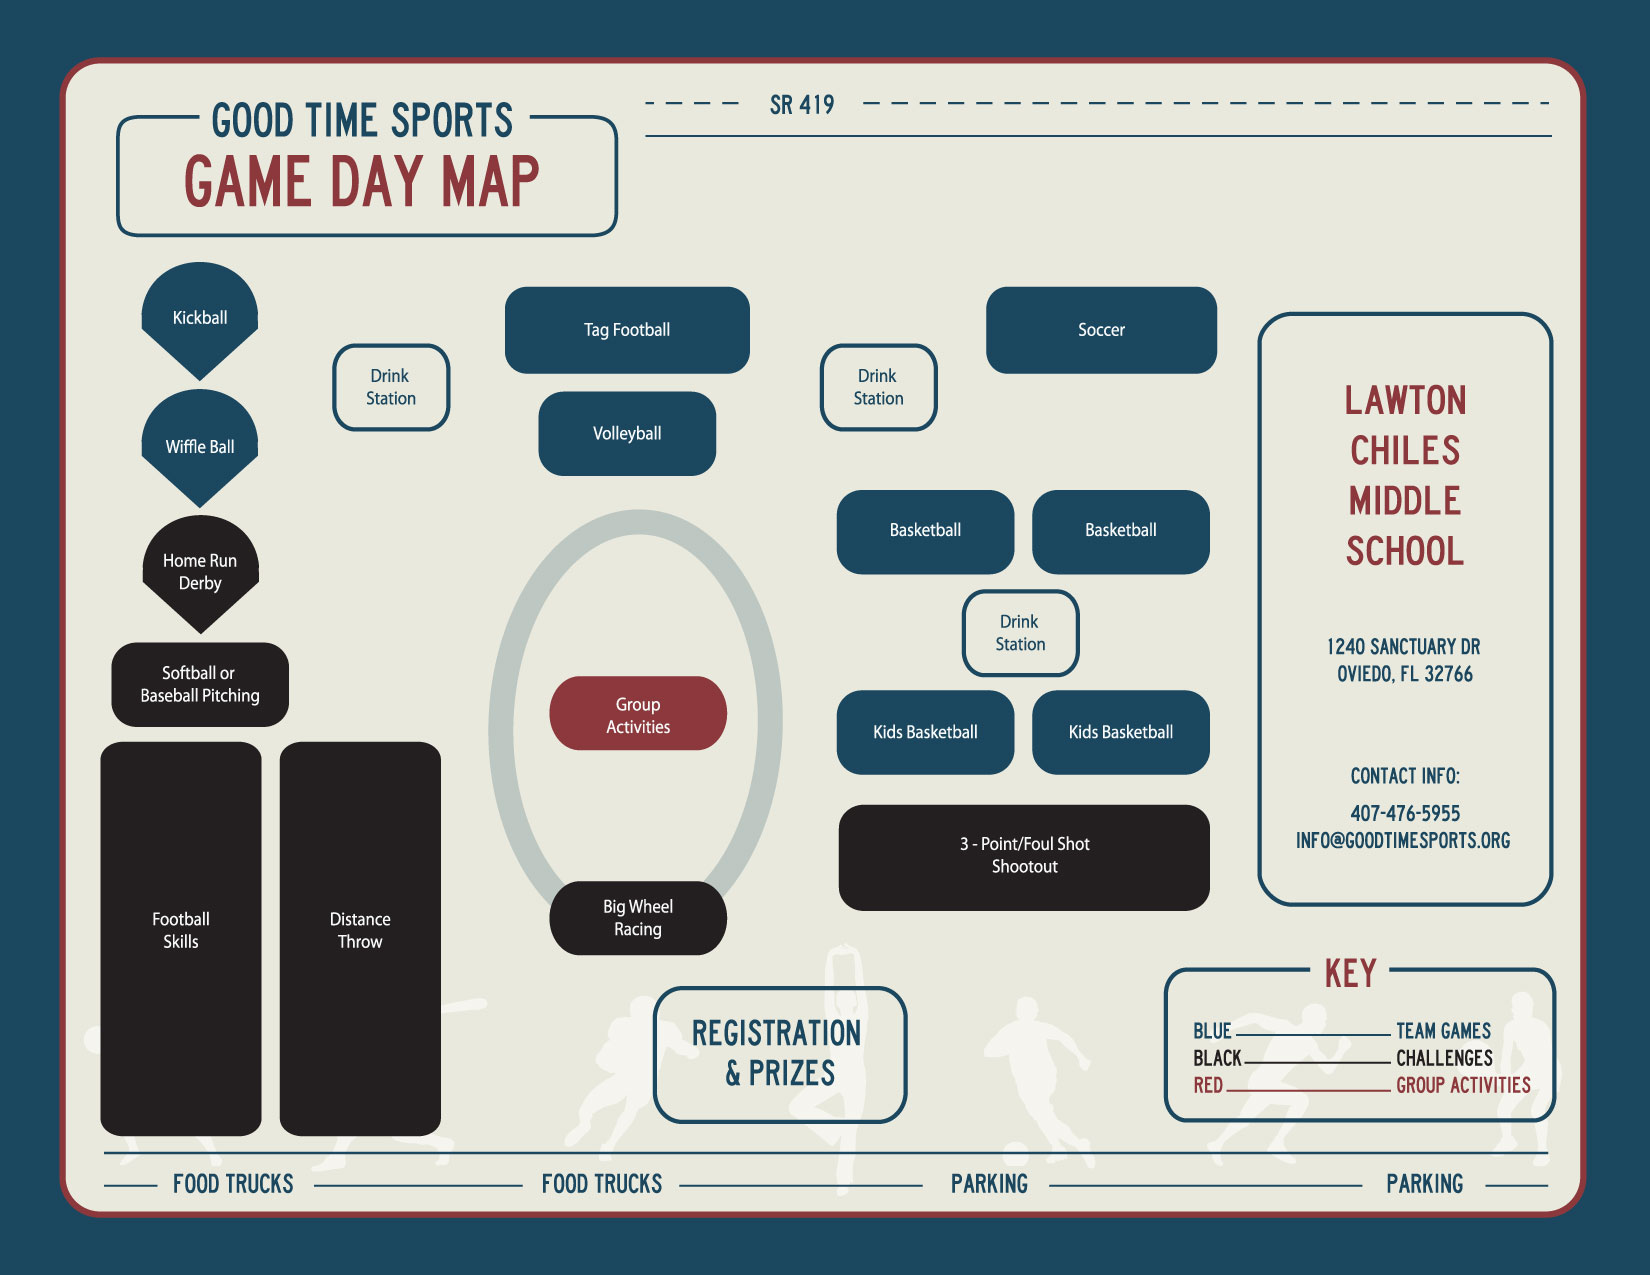 Good Time Sports Game Day Map